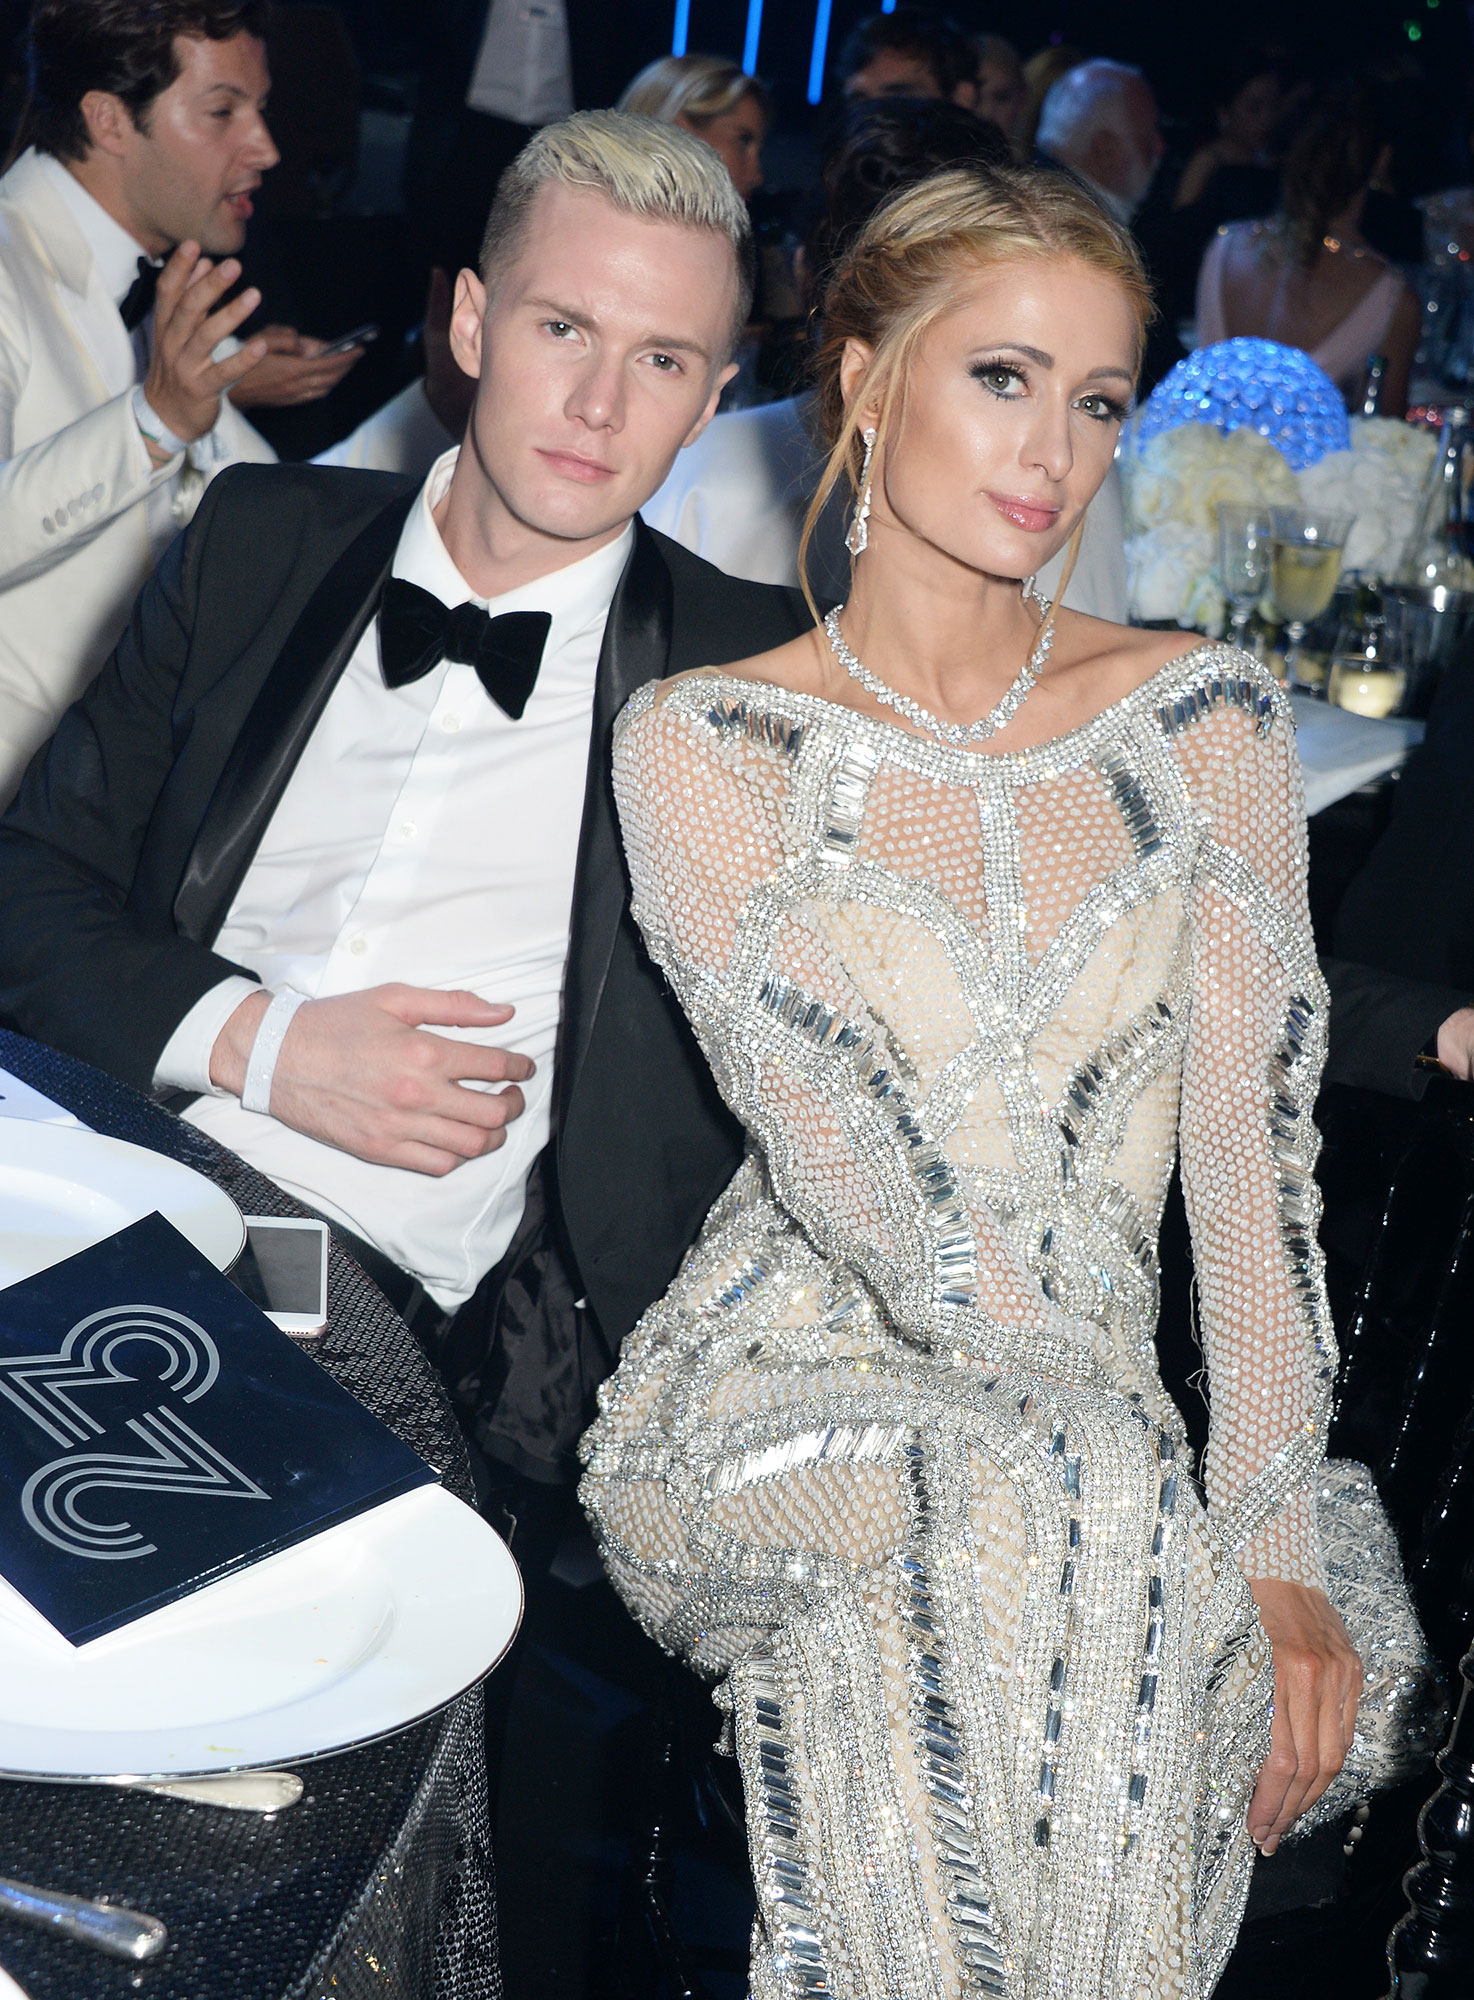 Paris Hilton's Brother Barron Hilton Knows She'll Find Love Again After Ending Engagement to Chris Zylka - Barron Hilton (L) and Paris Hilton attend amfAR's 23rd Cinema Against AIDS Gala at Hotel du Cap-Eden-Roc on May 19, 2016 in Cap d'Antibes, France